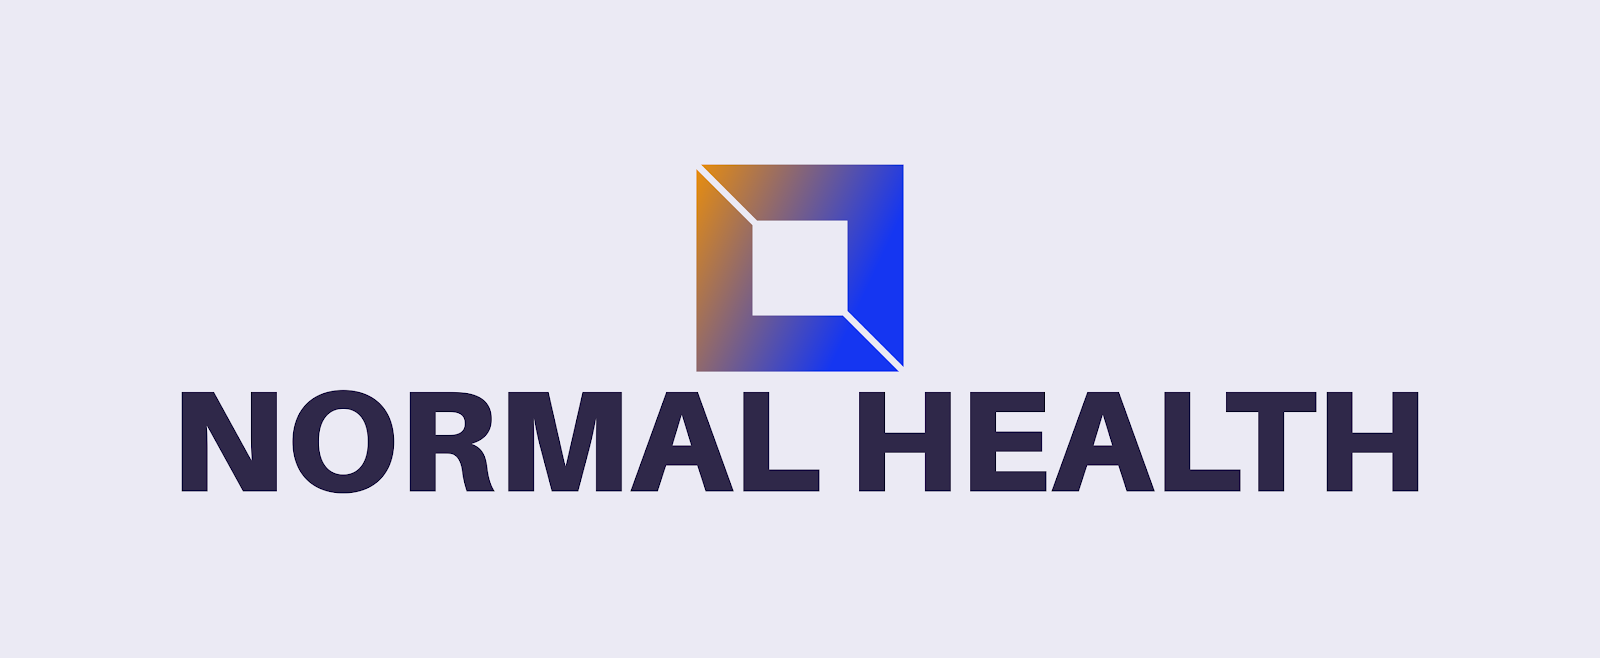 Normal Health